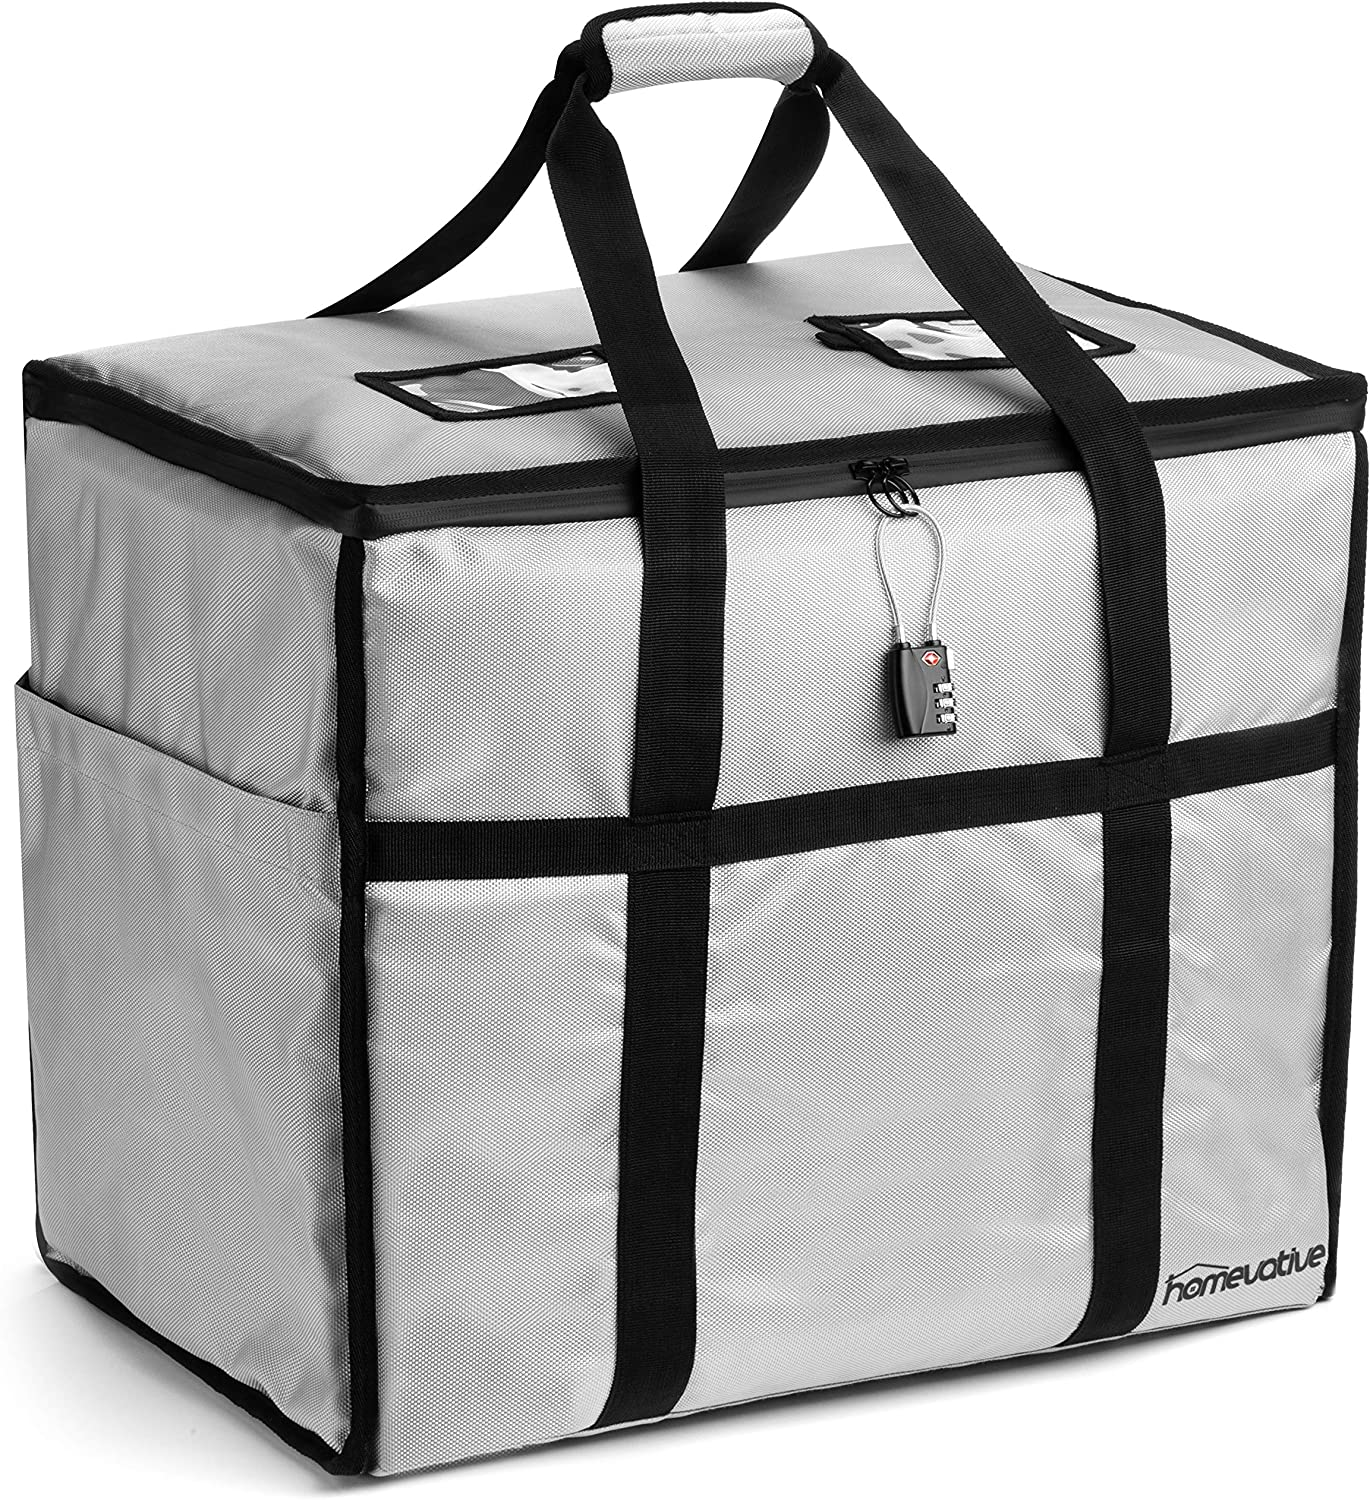 Homevative Locking Porch Delivery Bag for Groceries, Packages, Food Delivery, etc. 2 Combination Locks Included